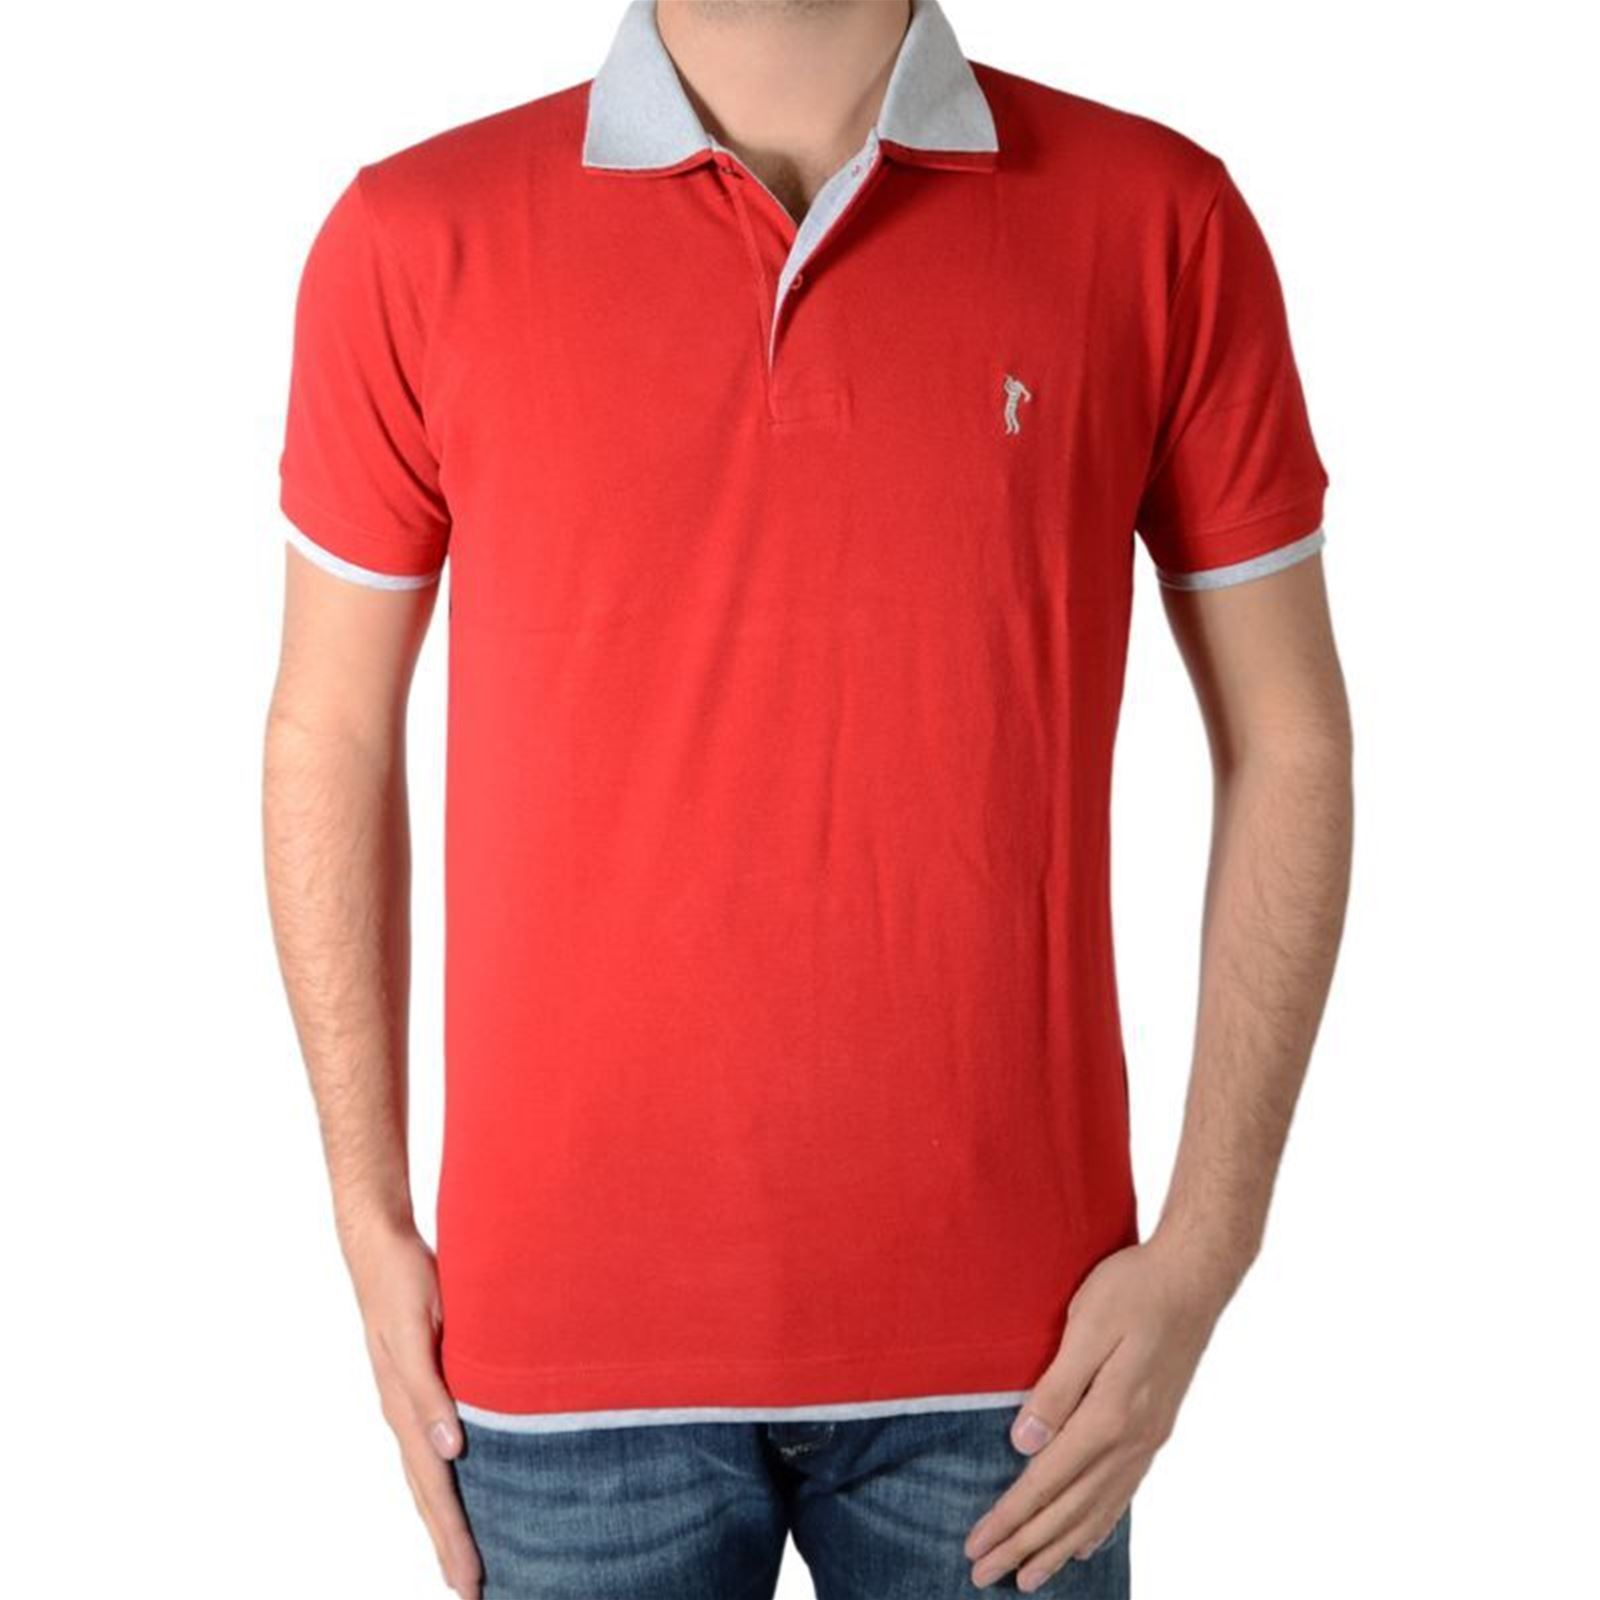 Marion Roth Polo Homme V Manches CourtesGris 0wnkXN8OP